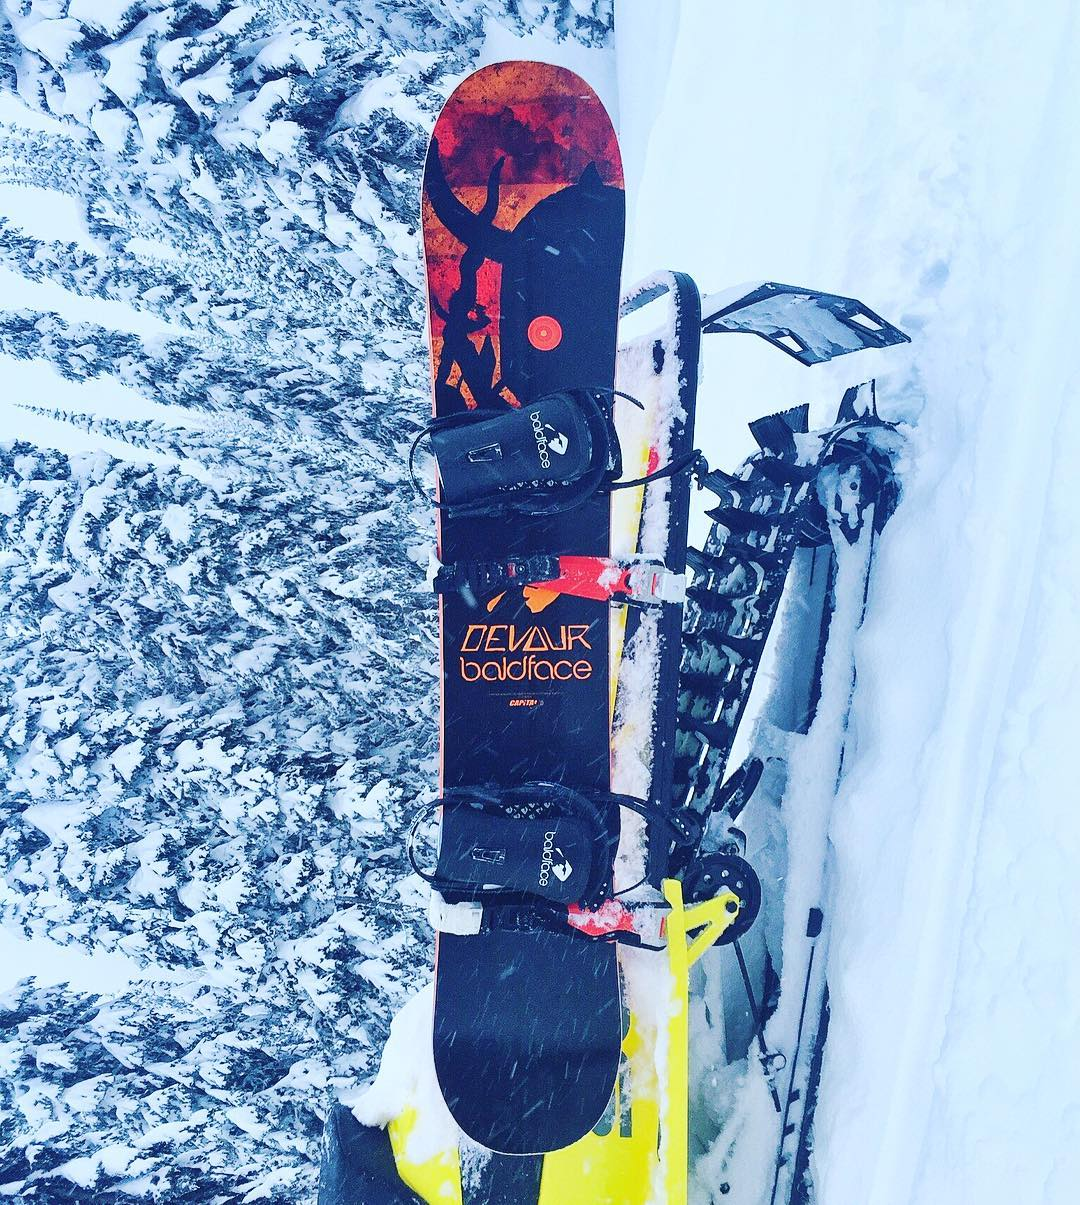 "My new favorite powder board: the Capita 158 ""Charlie Slasher"" model. This one even features custom graphics made for @BaldfaceLodge. It floats on the pow amazingly well, but still has a good tail for jumps and popping out of pow turns. I like. A lot...."